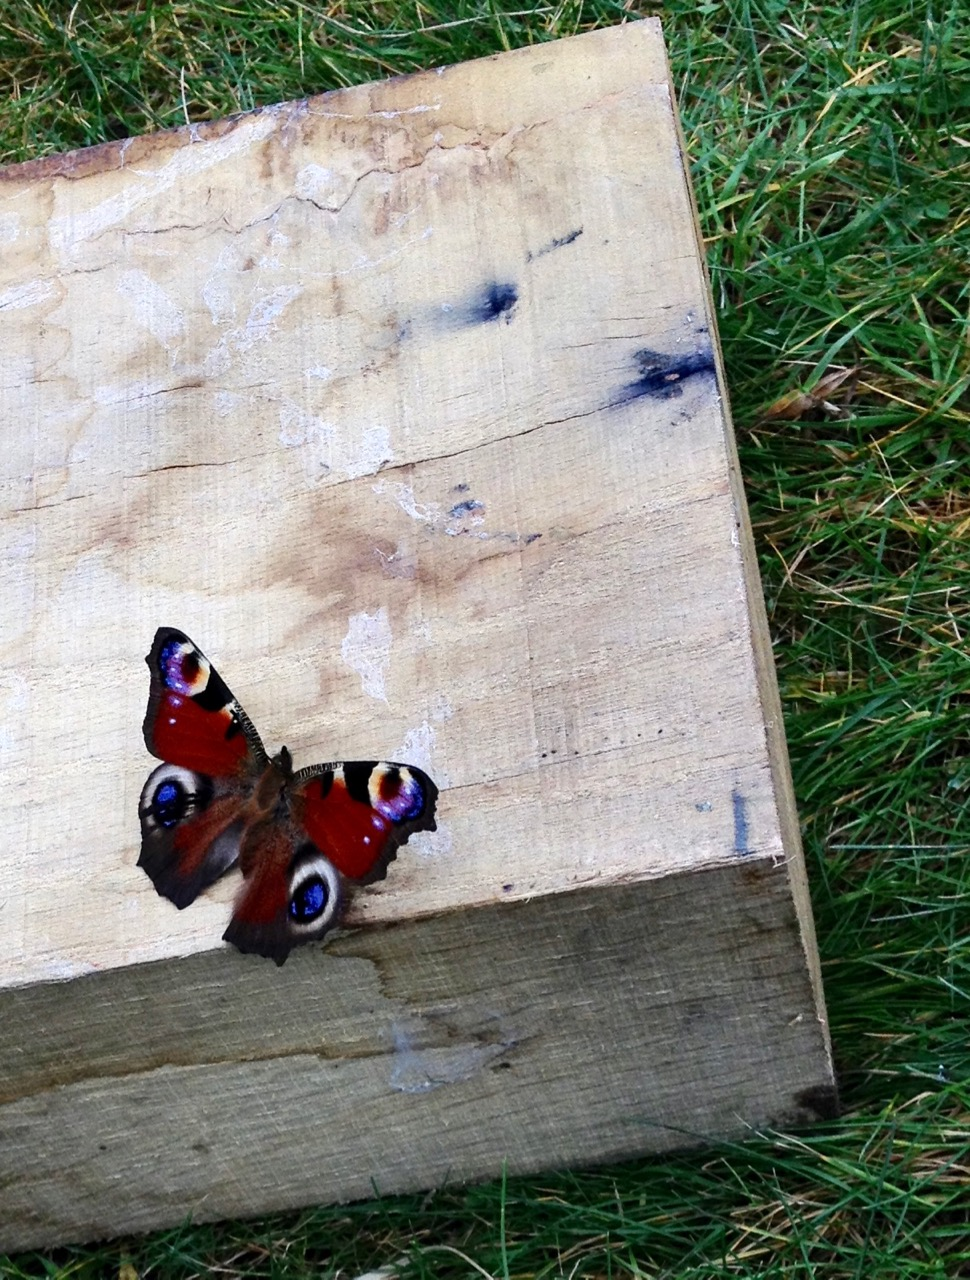 January 2018: a hibernating peacock butterfly we disturbed from a woodpile. It flapped its wings a lot and then we replaced it where we found it.